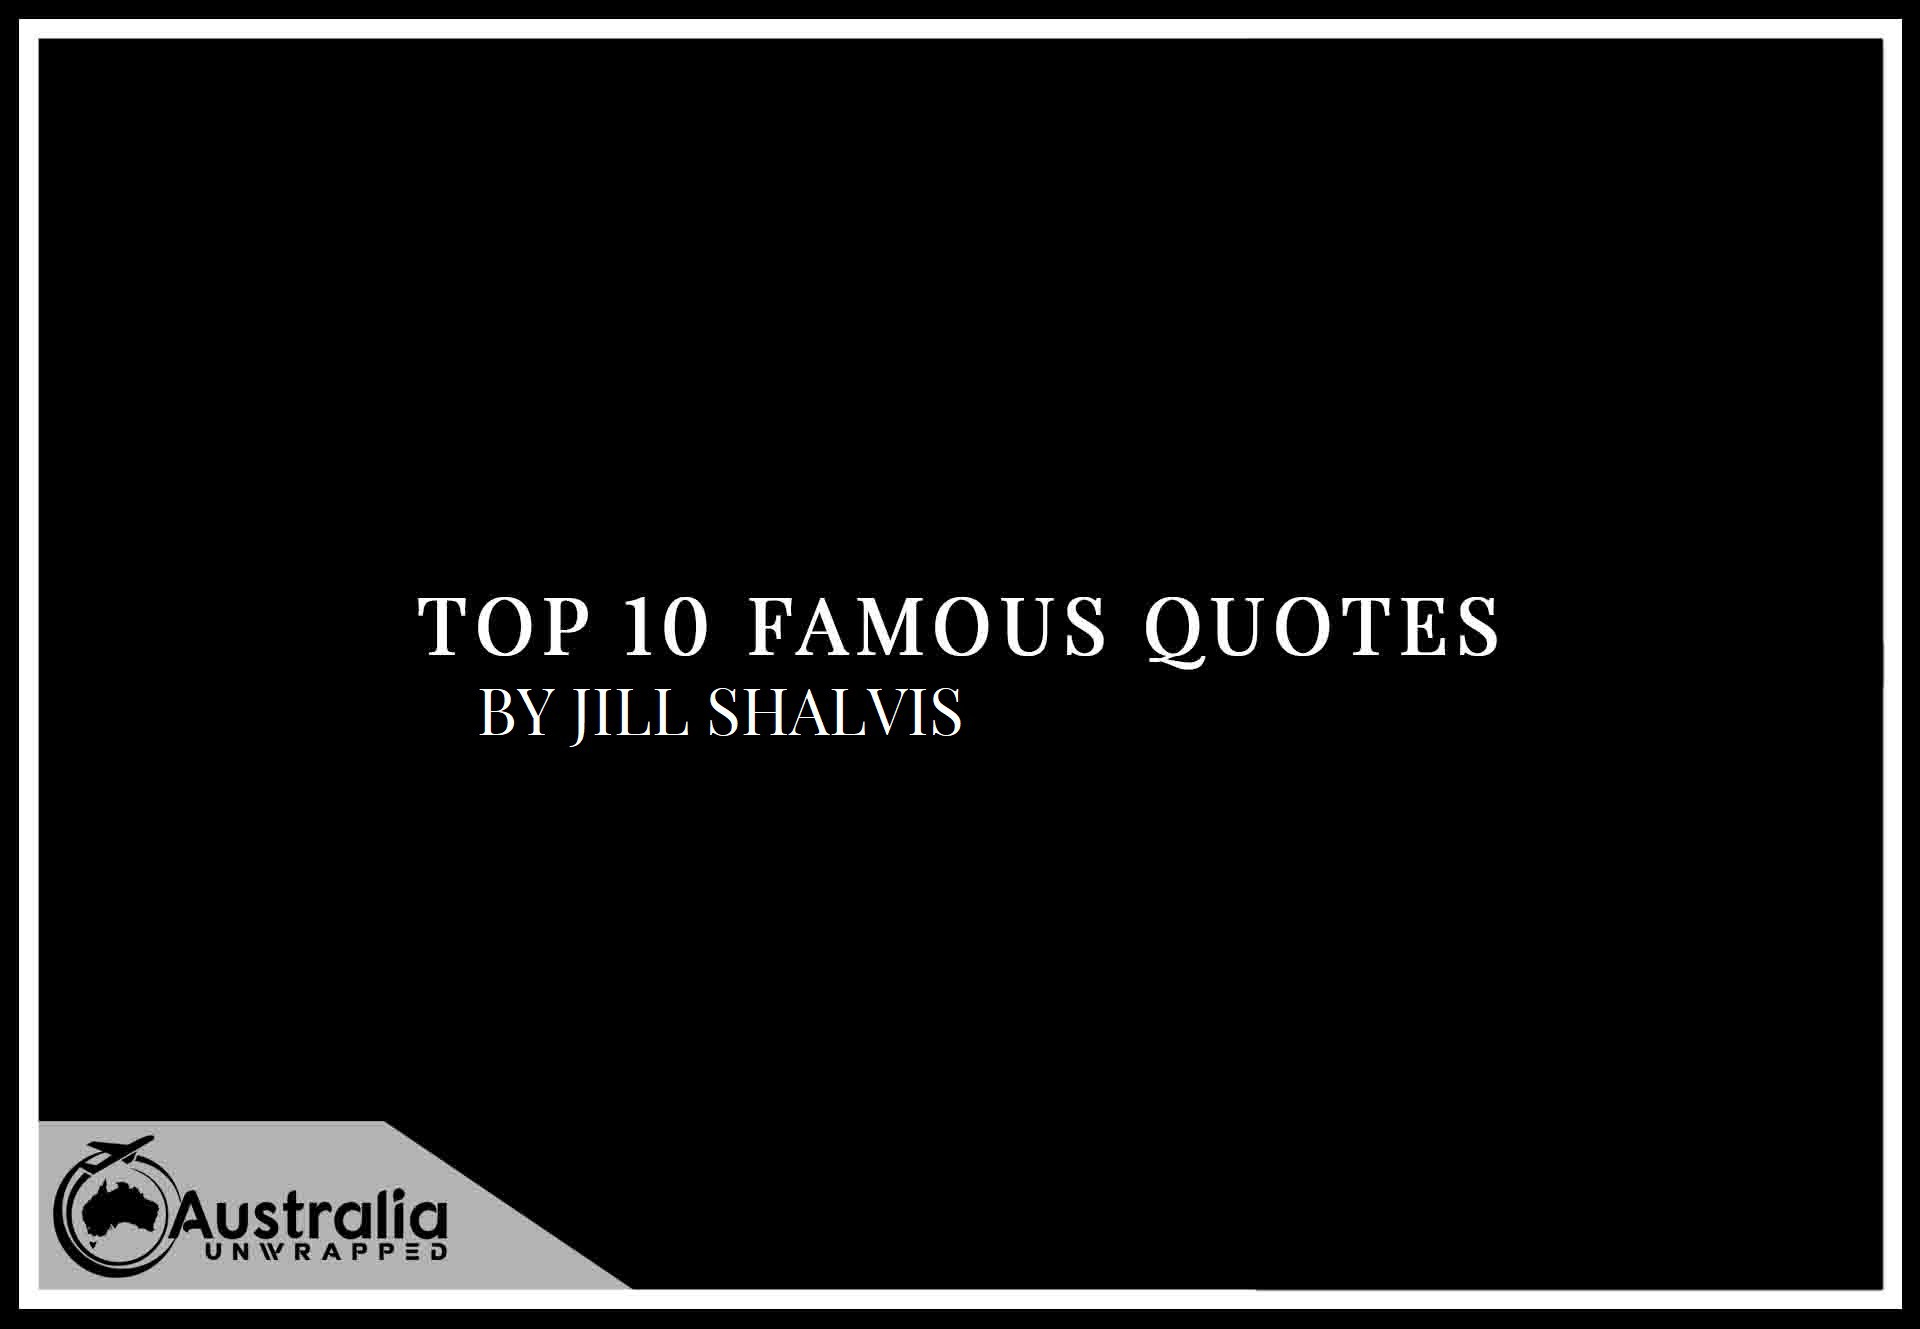 Top 10 Famous Quotes by Author Jill Shalvis